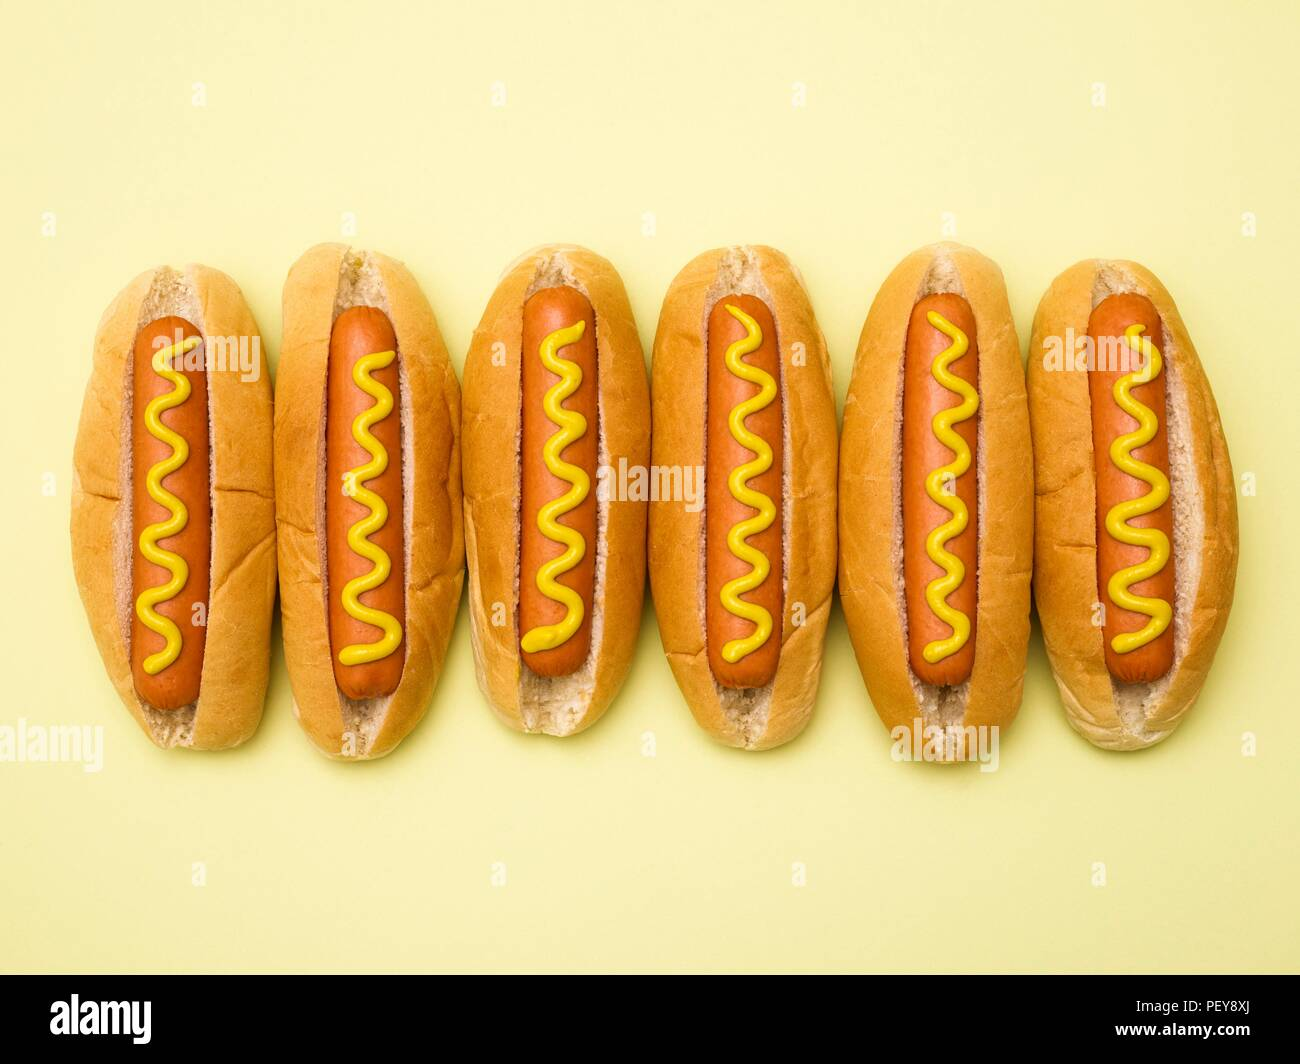 Hot dogs against a plain background. - Stock Image